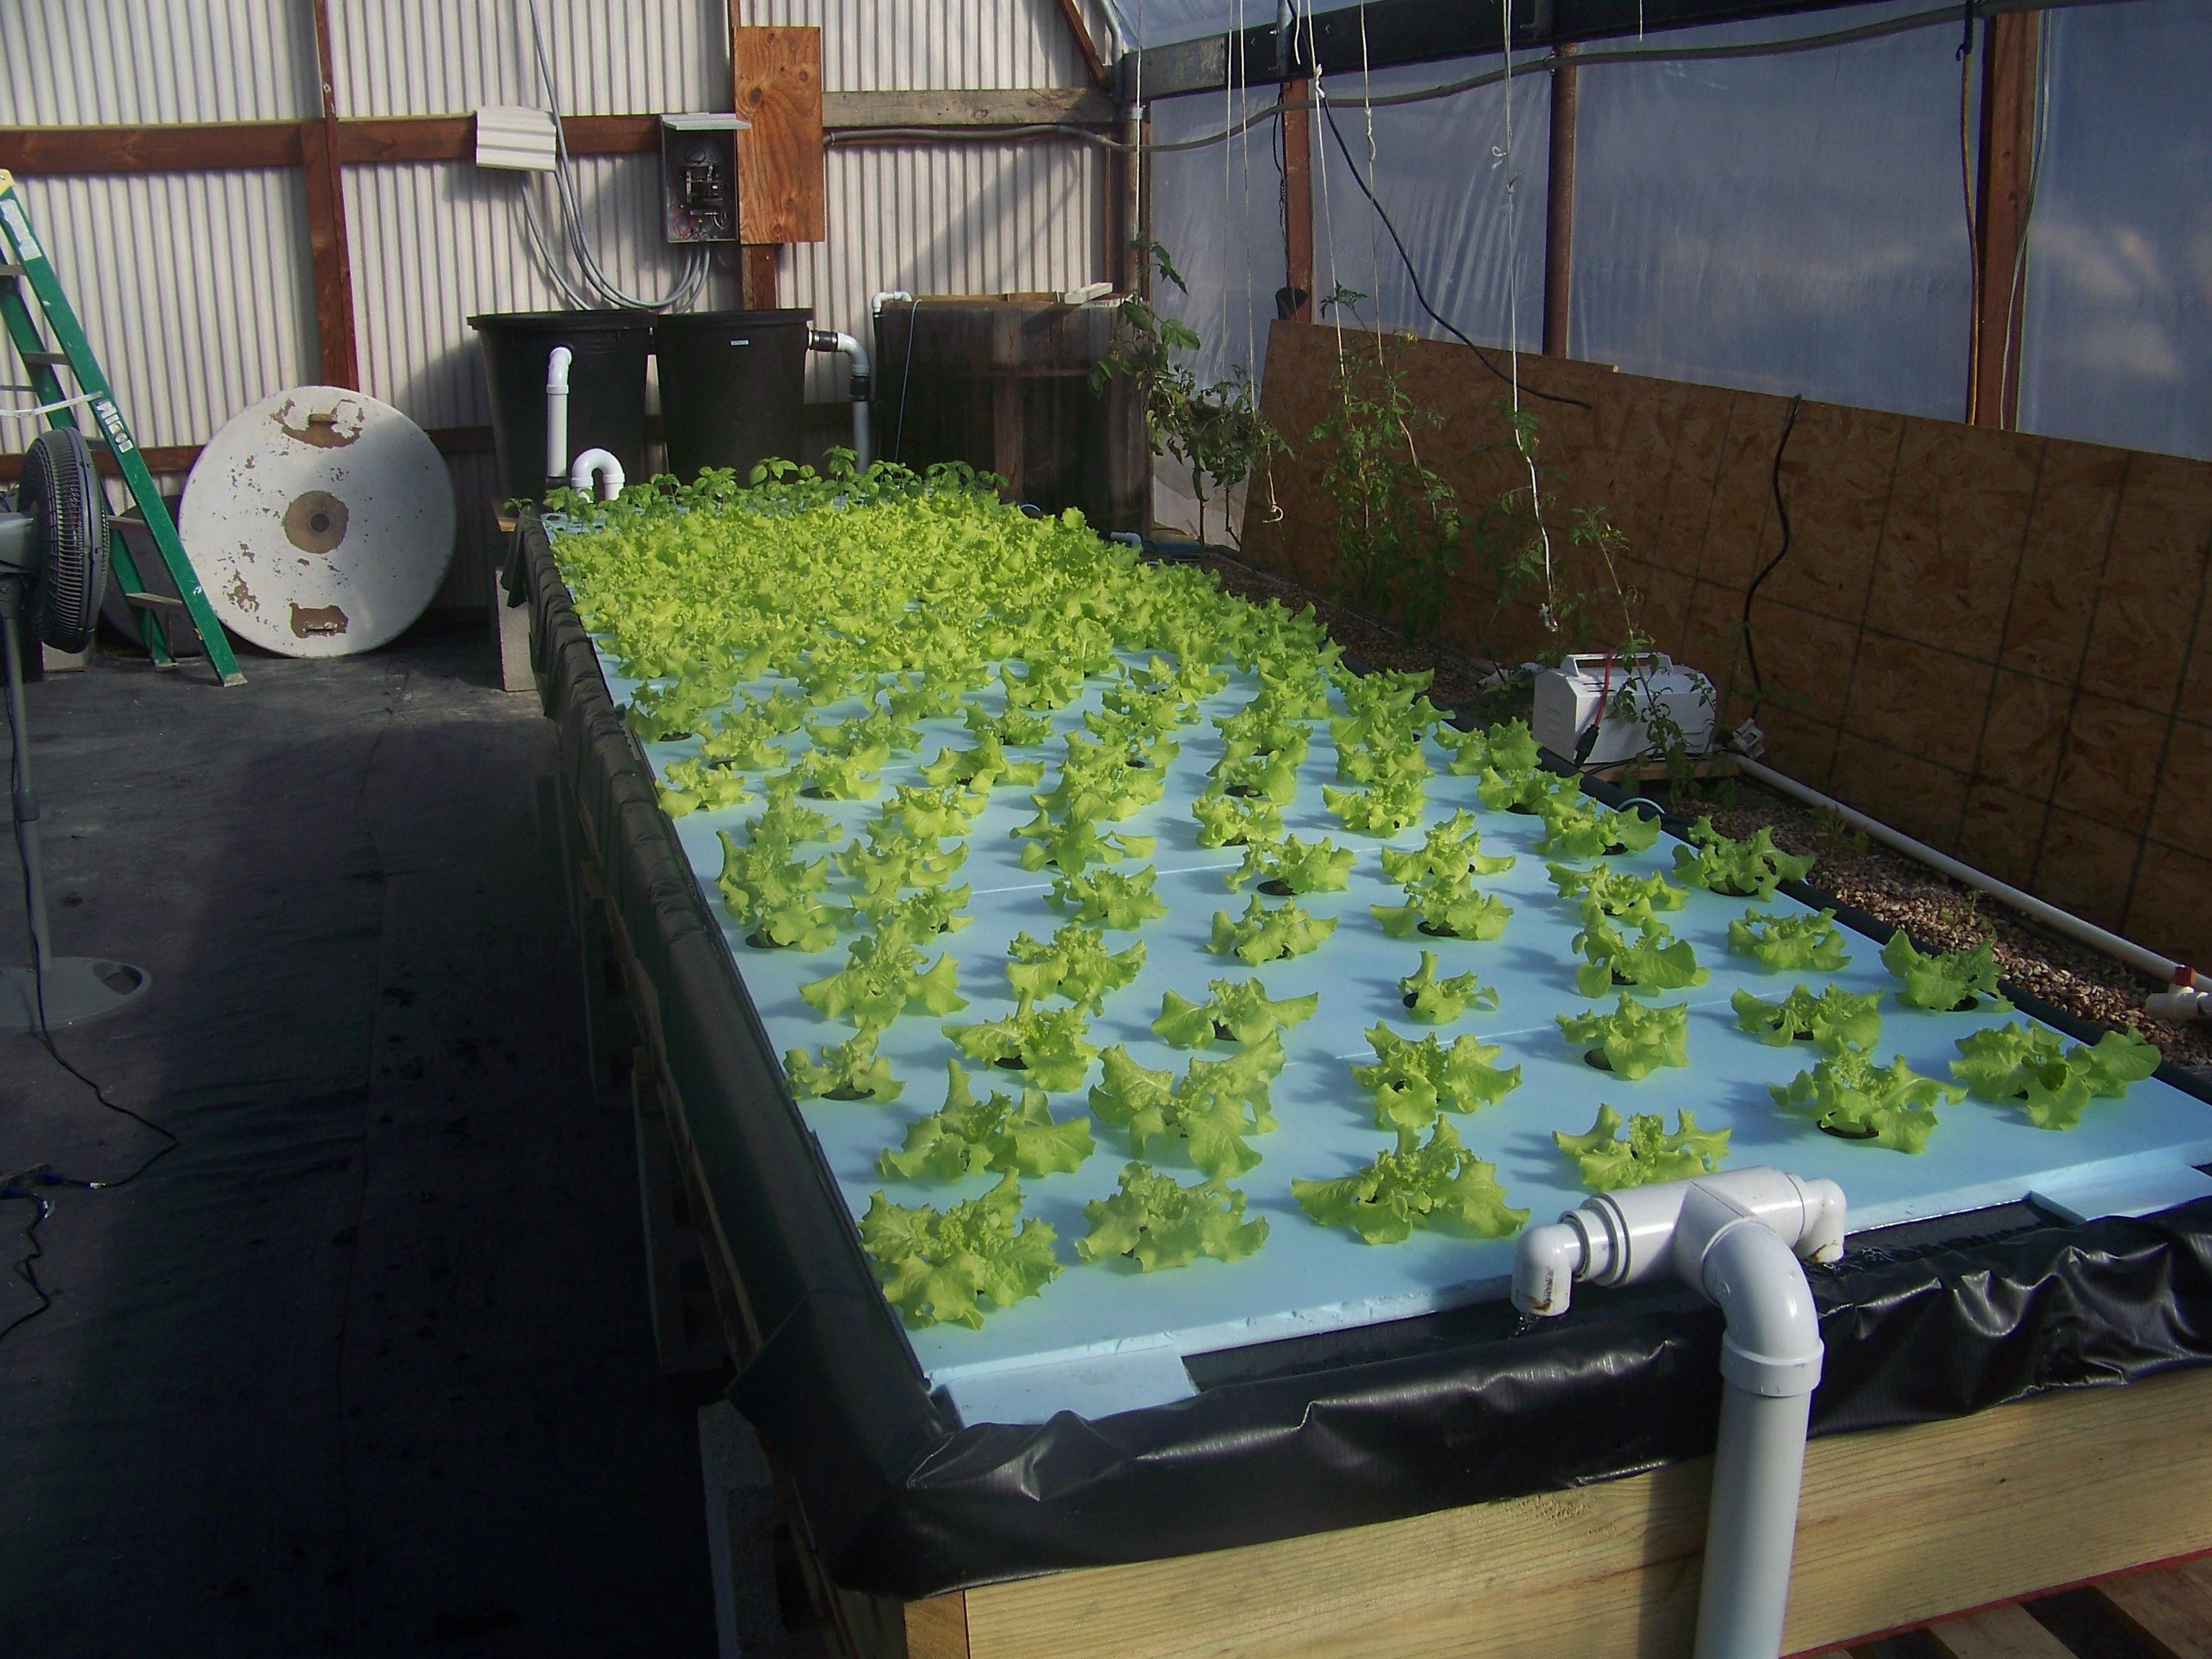 Di system free aquaponics info for Fish used in aquaponics